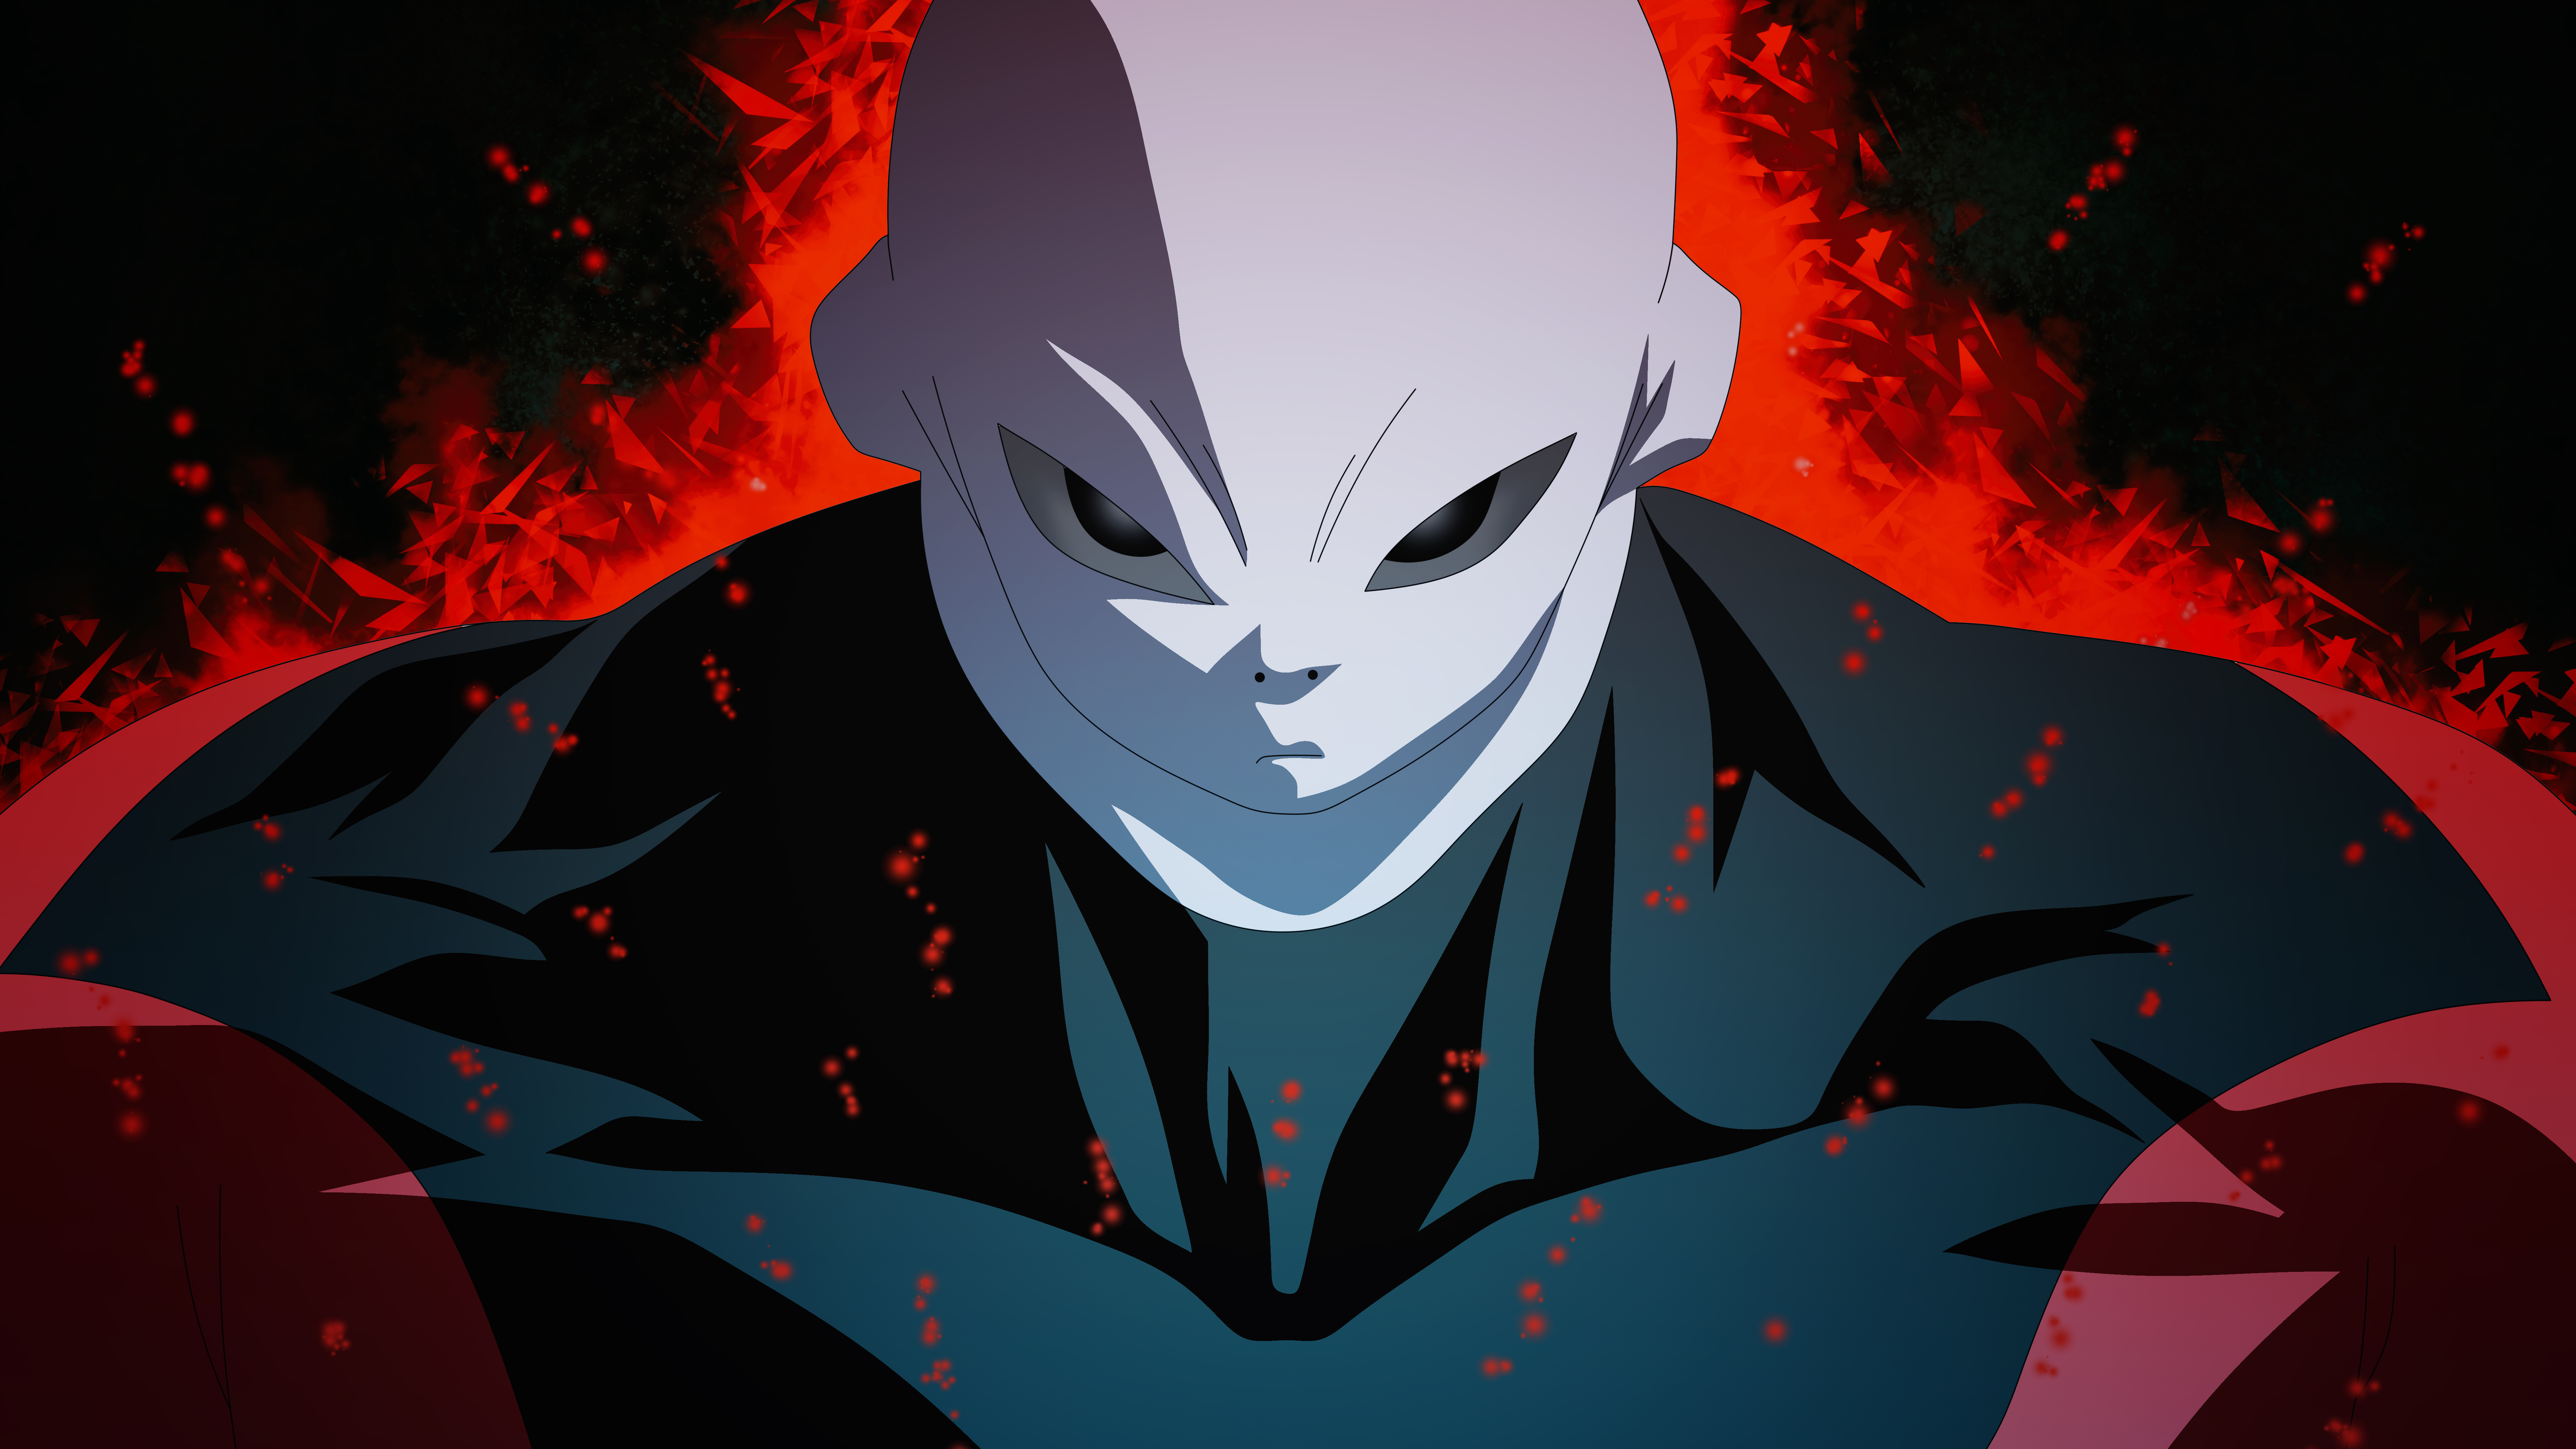 jiren-dragon-ball-super-8n.jpg